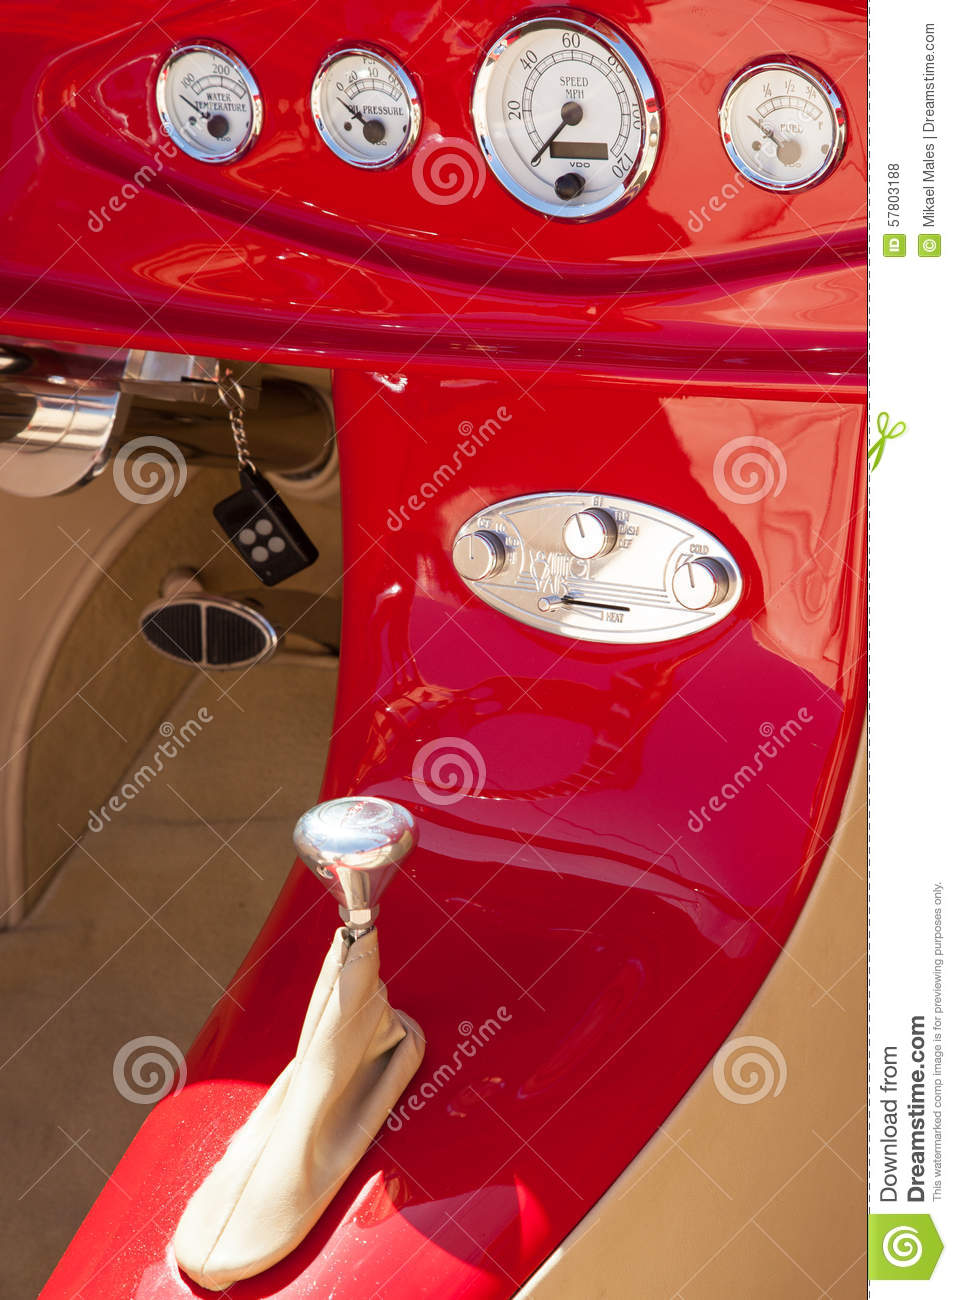 Inside dash of a red hot rod